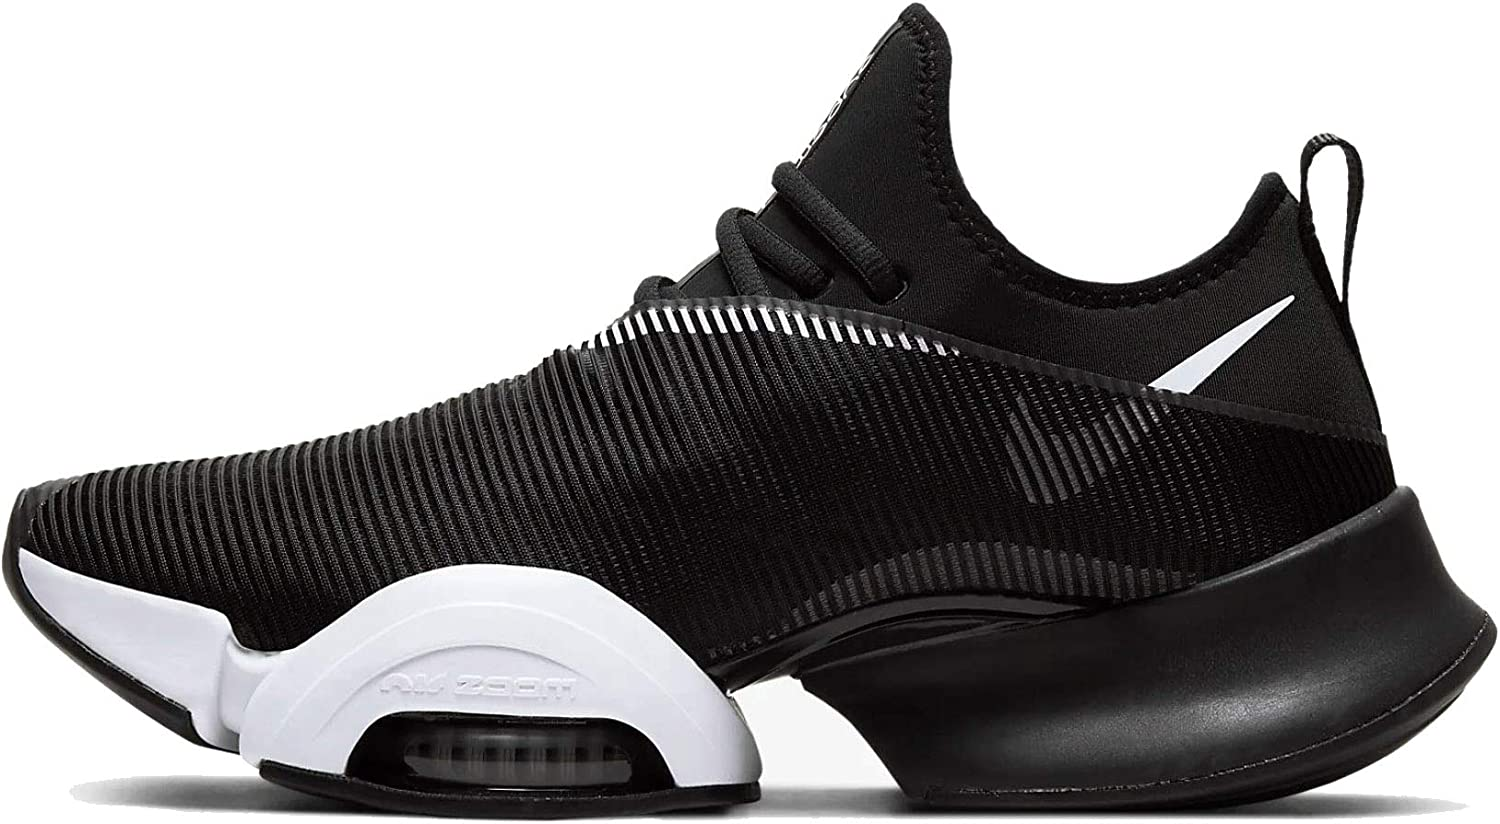 Nike Discount is also underway Air Zoom Superrep Mens Shoe HIIT Cd3460-010 Ranking TOP16 Class Size